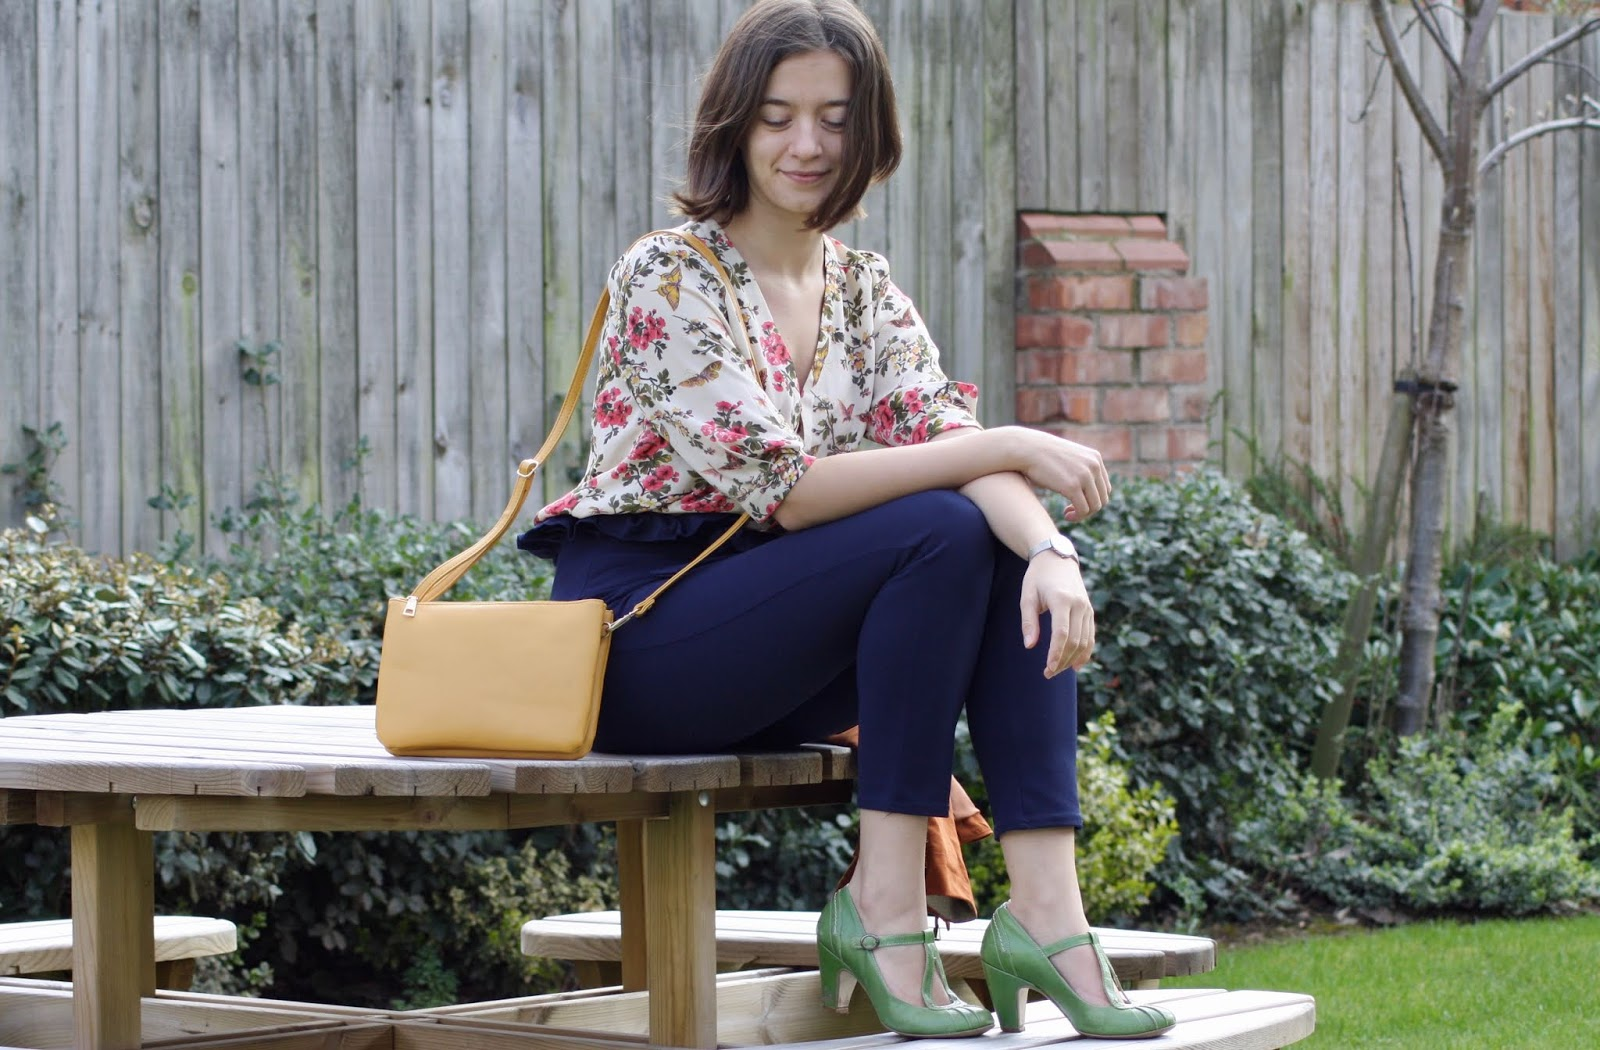 Abbey, smiling, sits on wooden picnic table, wearing a floral top, blue trousers, yellow bag, and green shoes